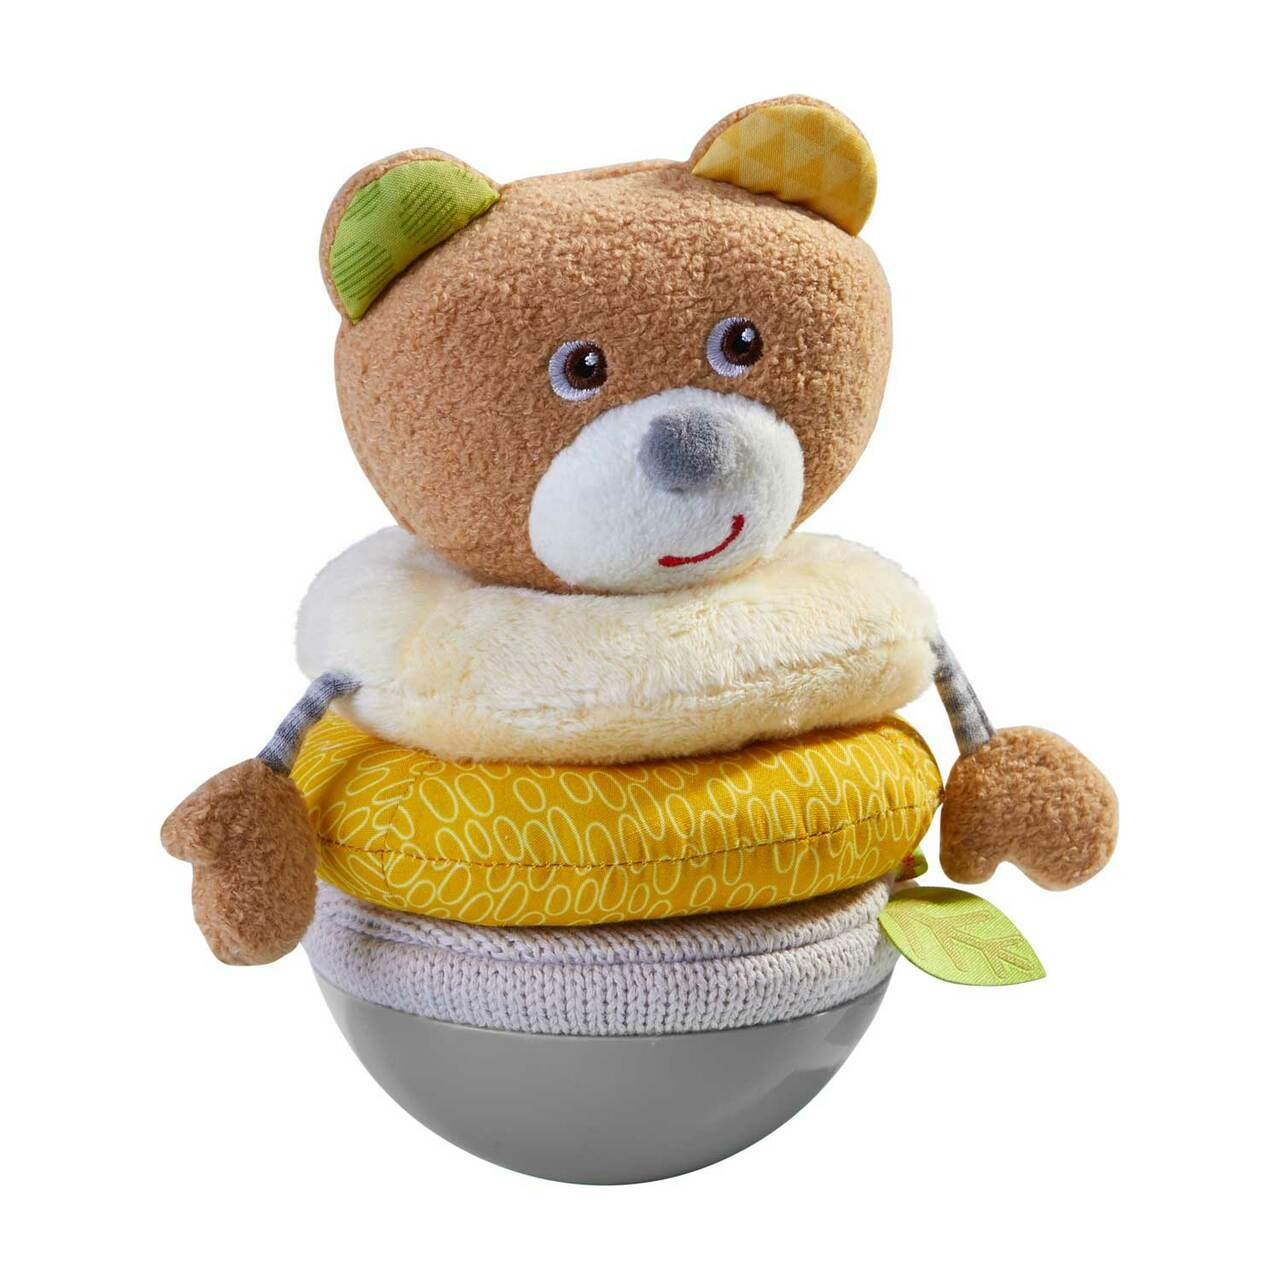 Haba Roly Poly Bear with Stacking Rings